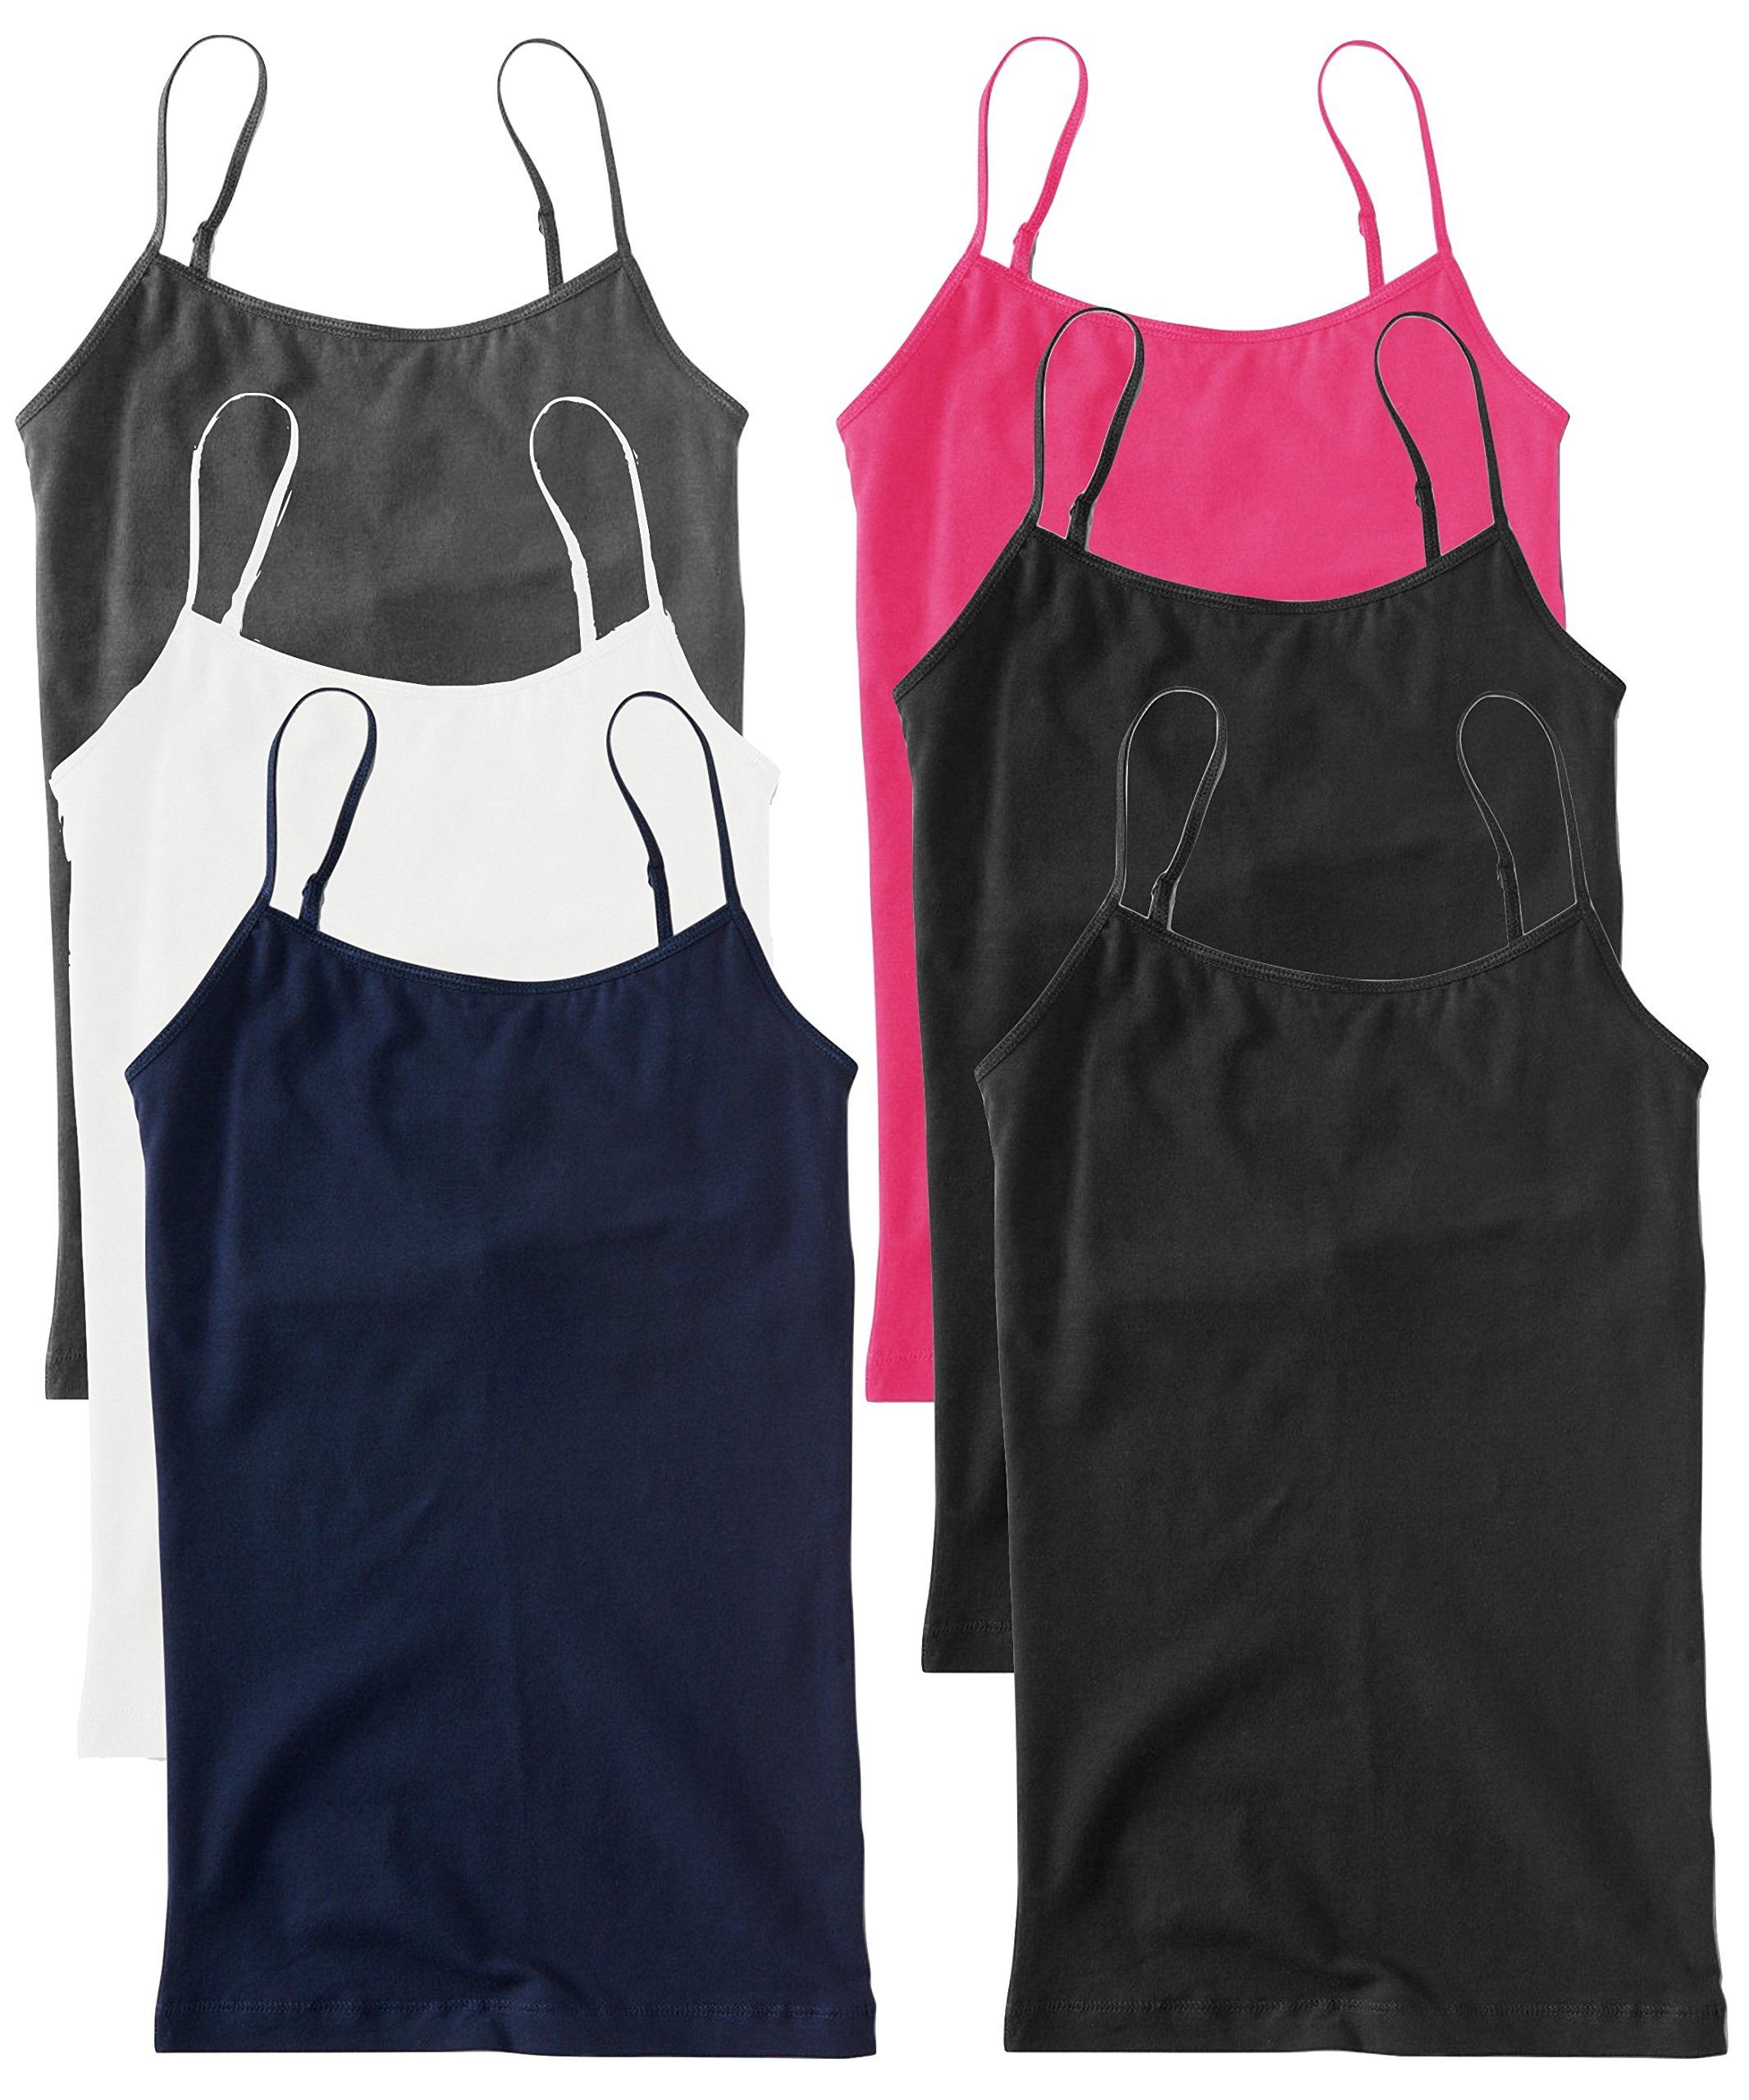 Unique Styles 6 Pack Plus Size Basic Layering Camisole Tank Tops for Women (1X, 2 Black, White, Grey, Pink, Navy)